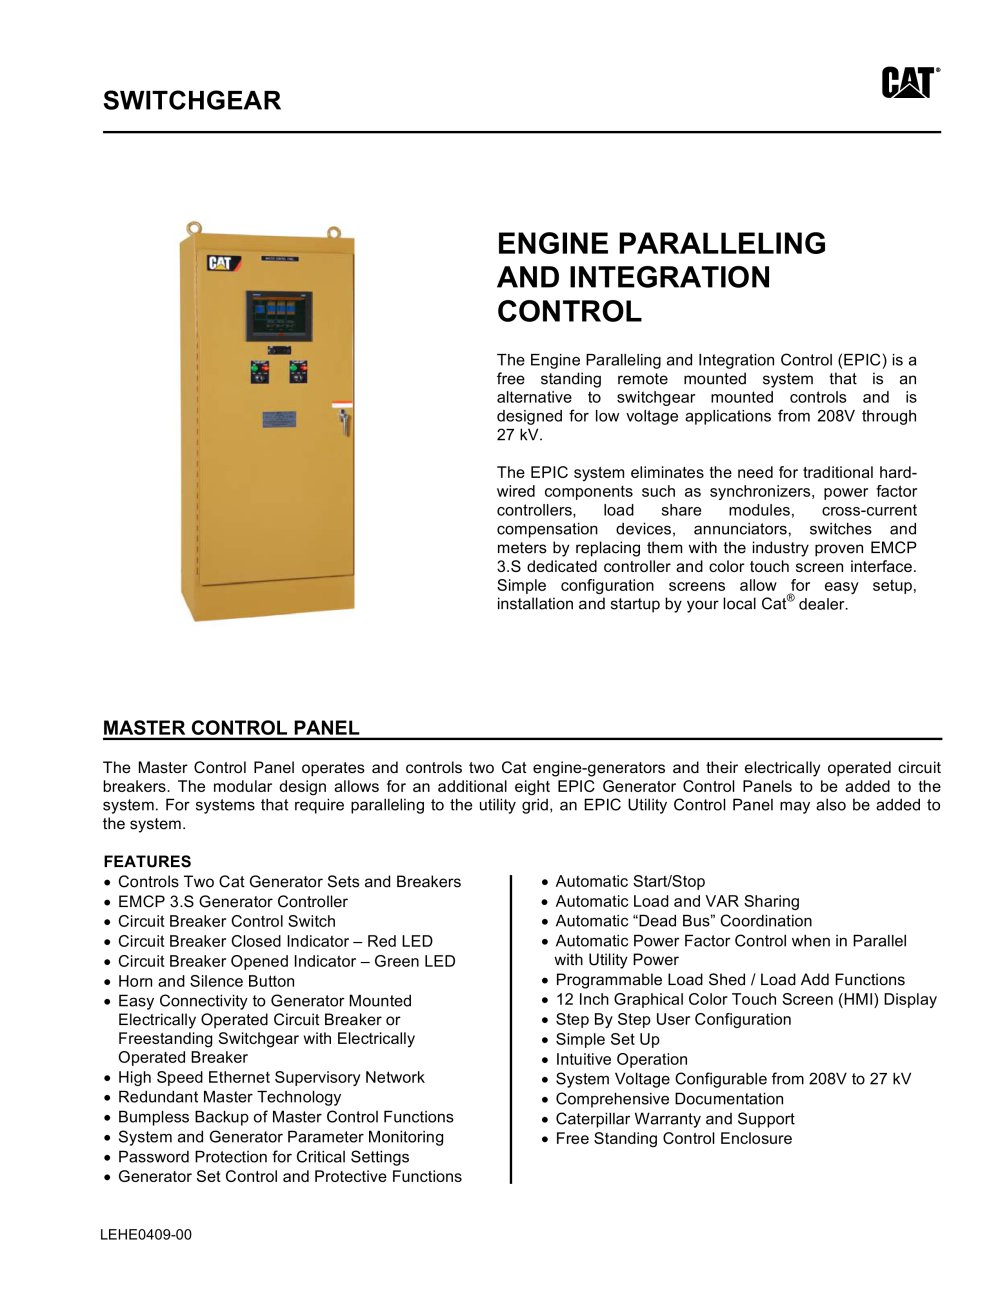 epic engine paralleling and integration control caterpillarepic engine paralleling and integration control 1 4 pages